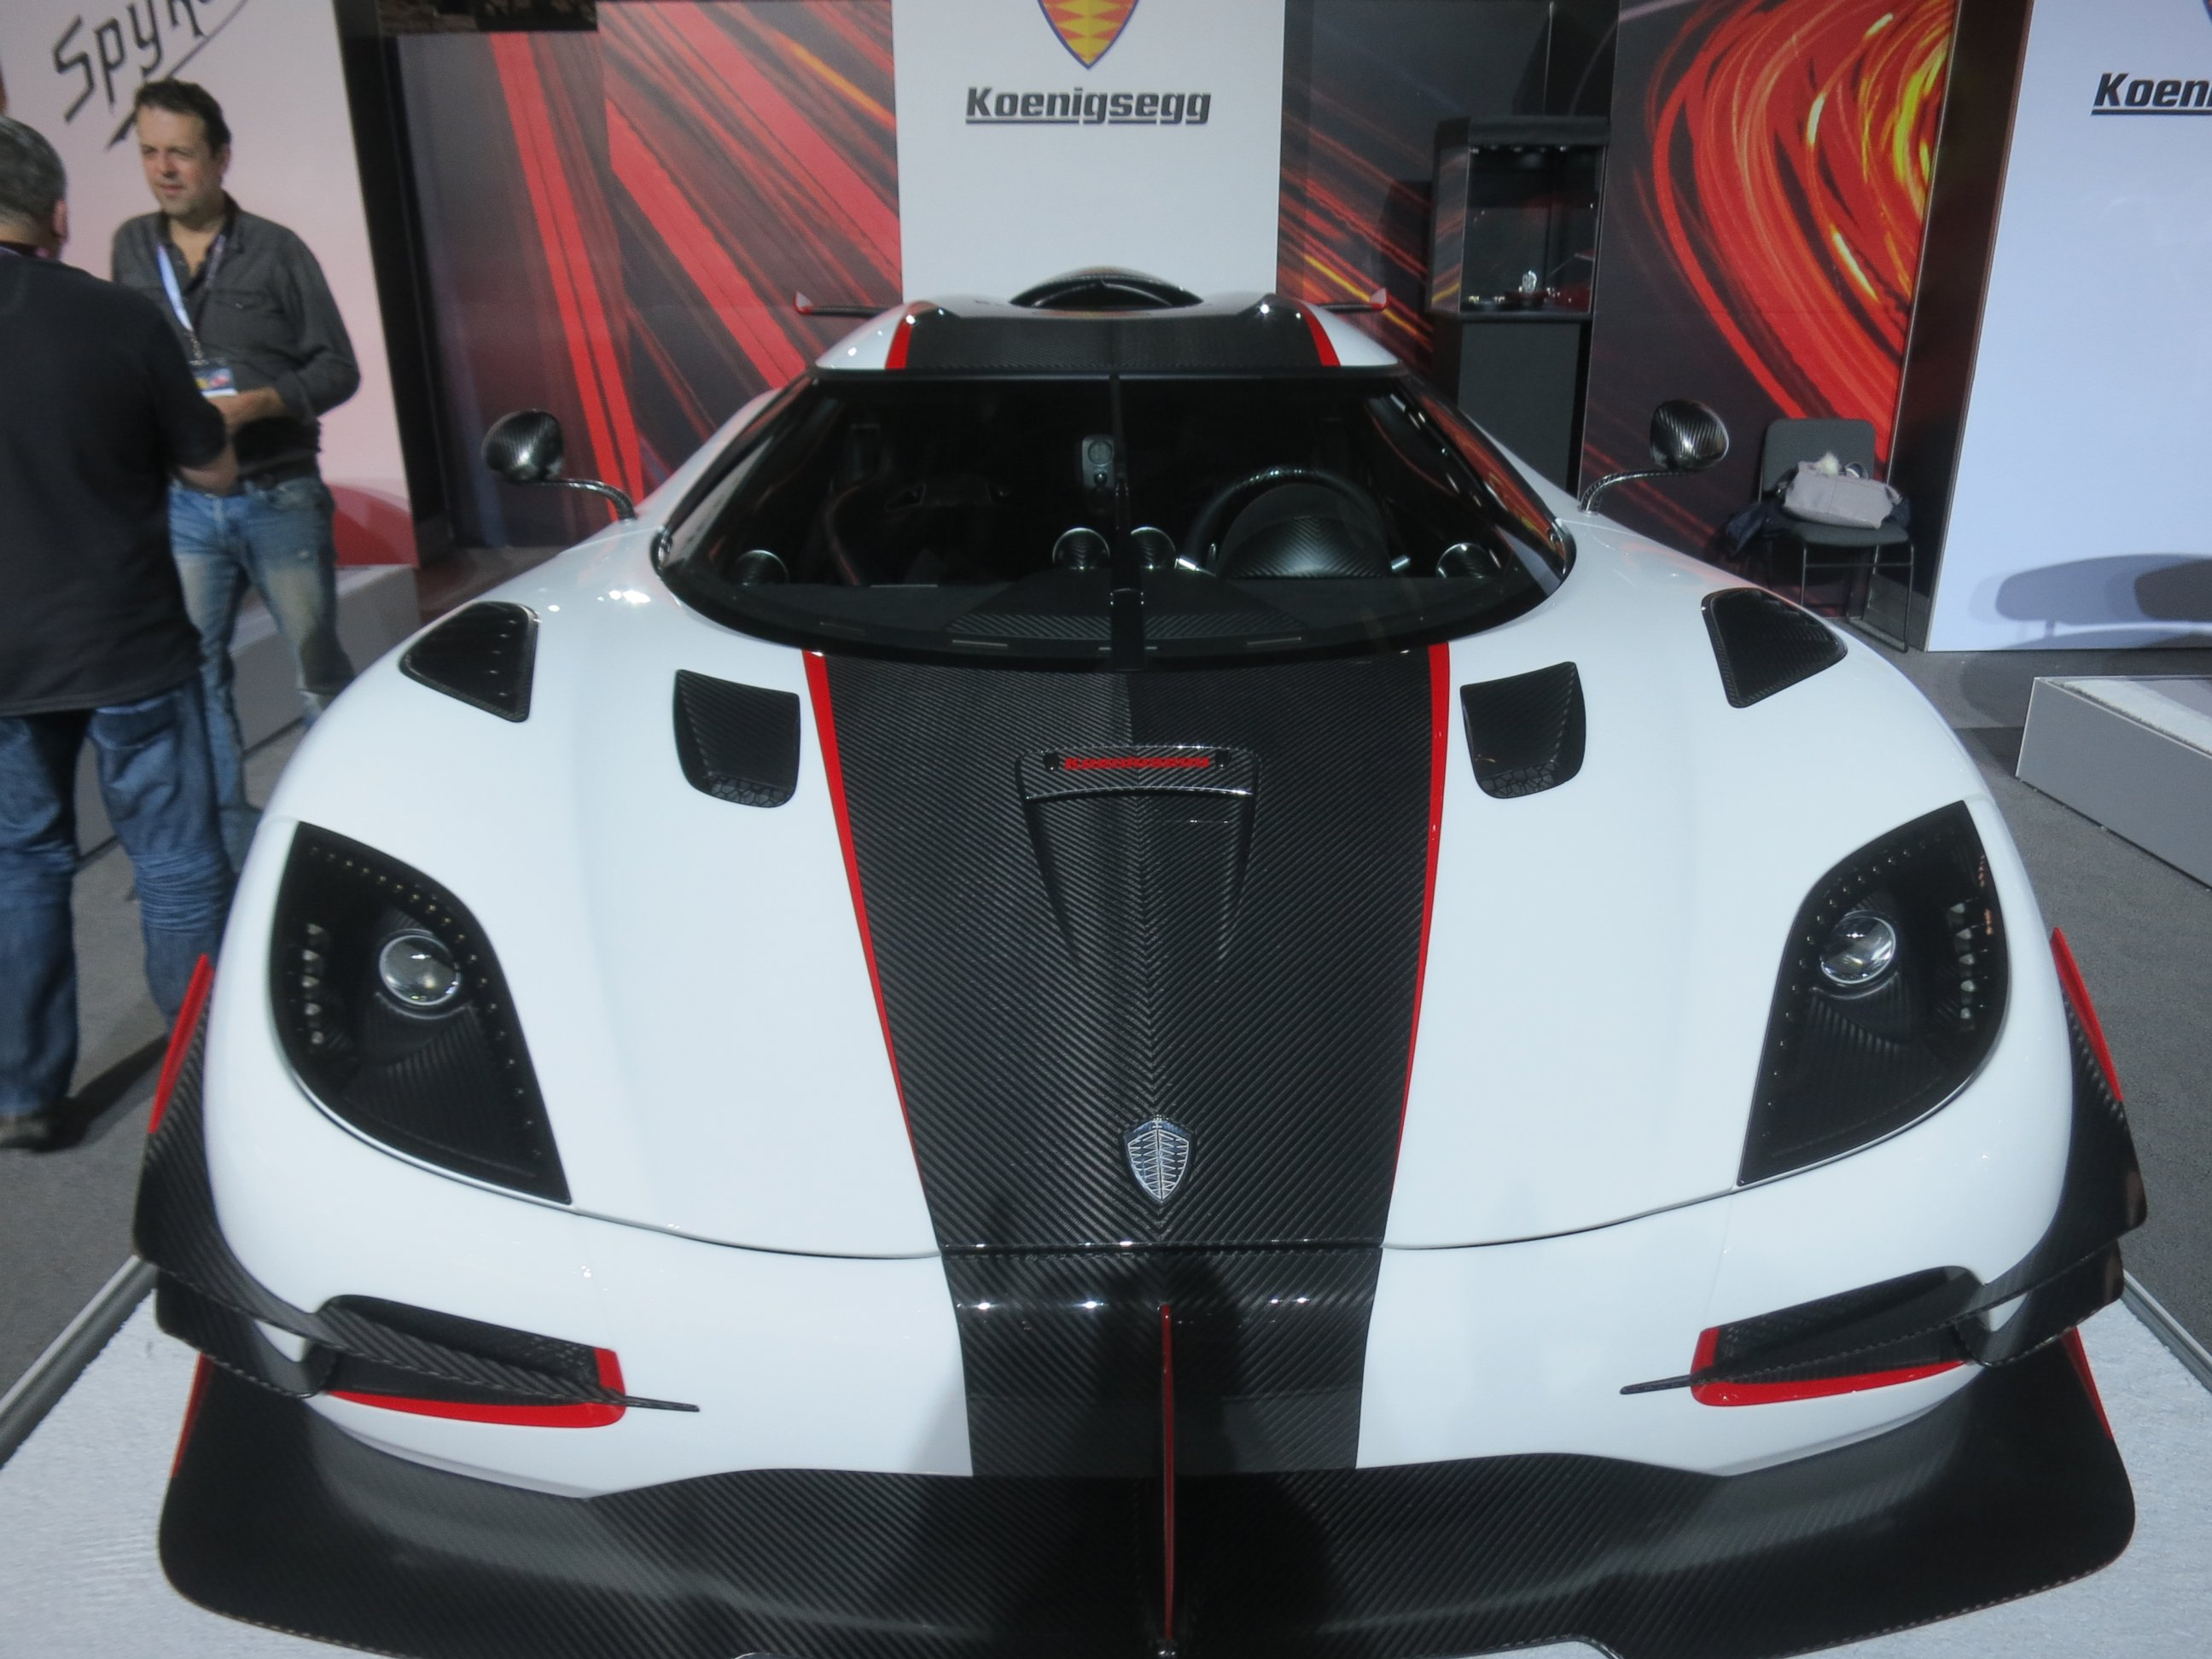 Photo Sweden S Koenigsegg Automotive Ab One 1 Is Named For Its To Weight Ratio With Megawatt Or 360hp Match 360kg Curb A